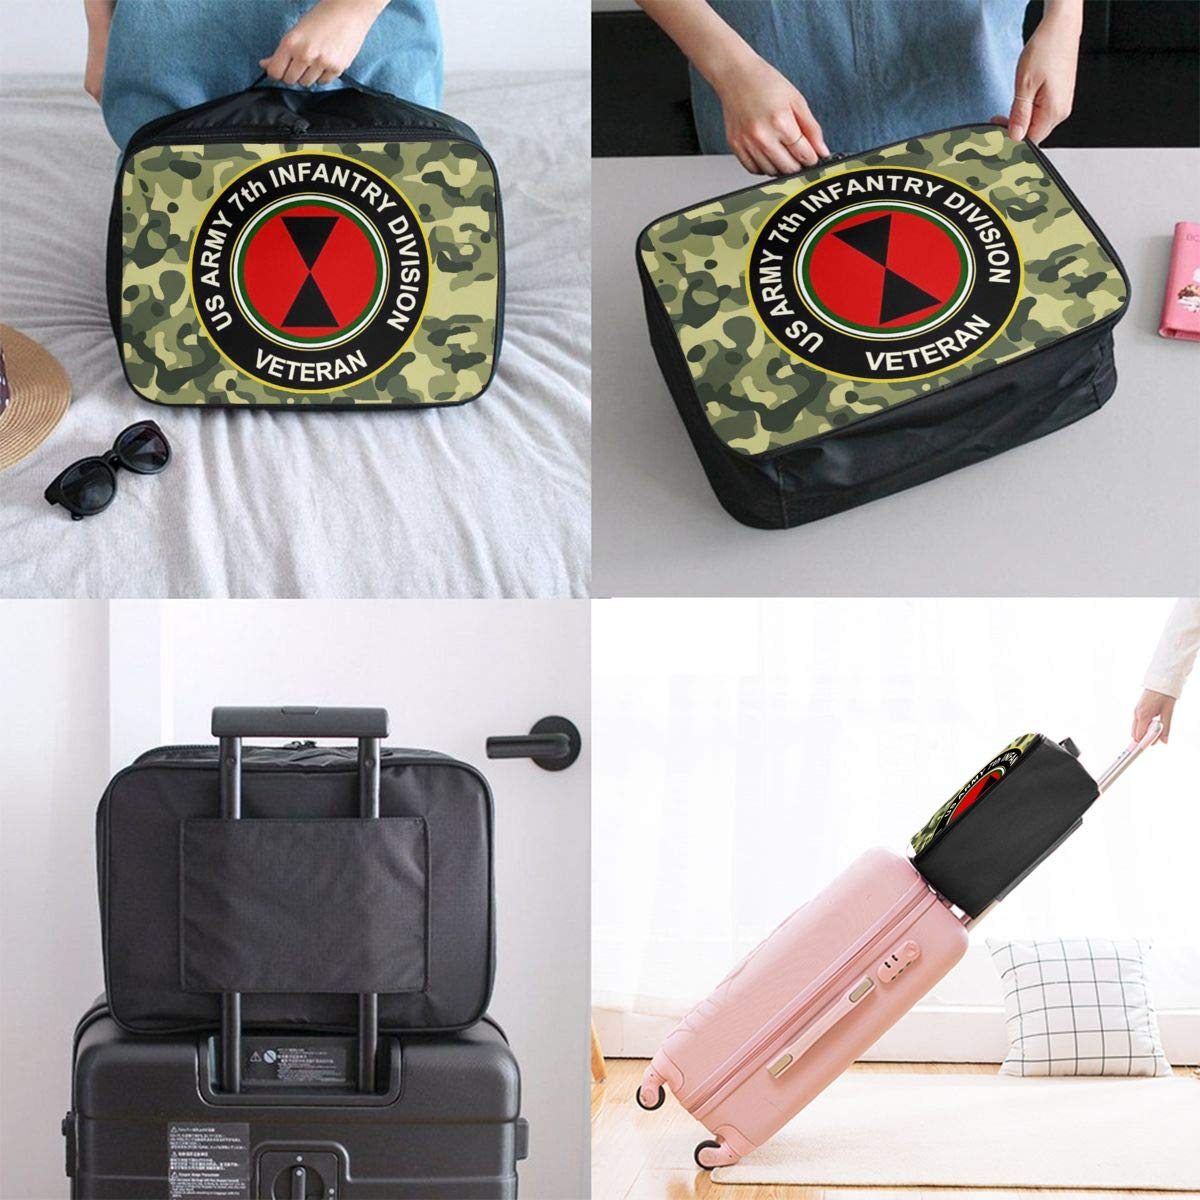 Army 7th Infantry Division Travel Bag Men Women 3D Print Pattern Gift Portable Waterproof Oxford Cloth Bags